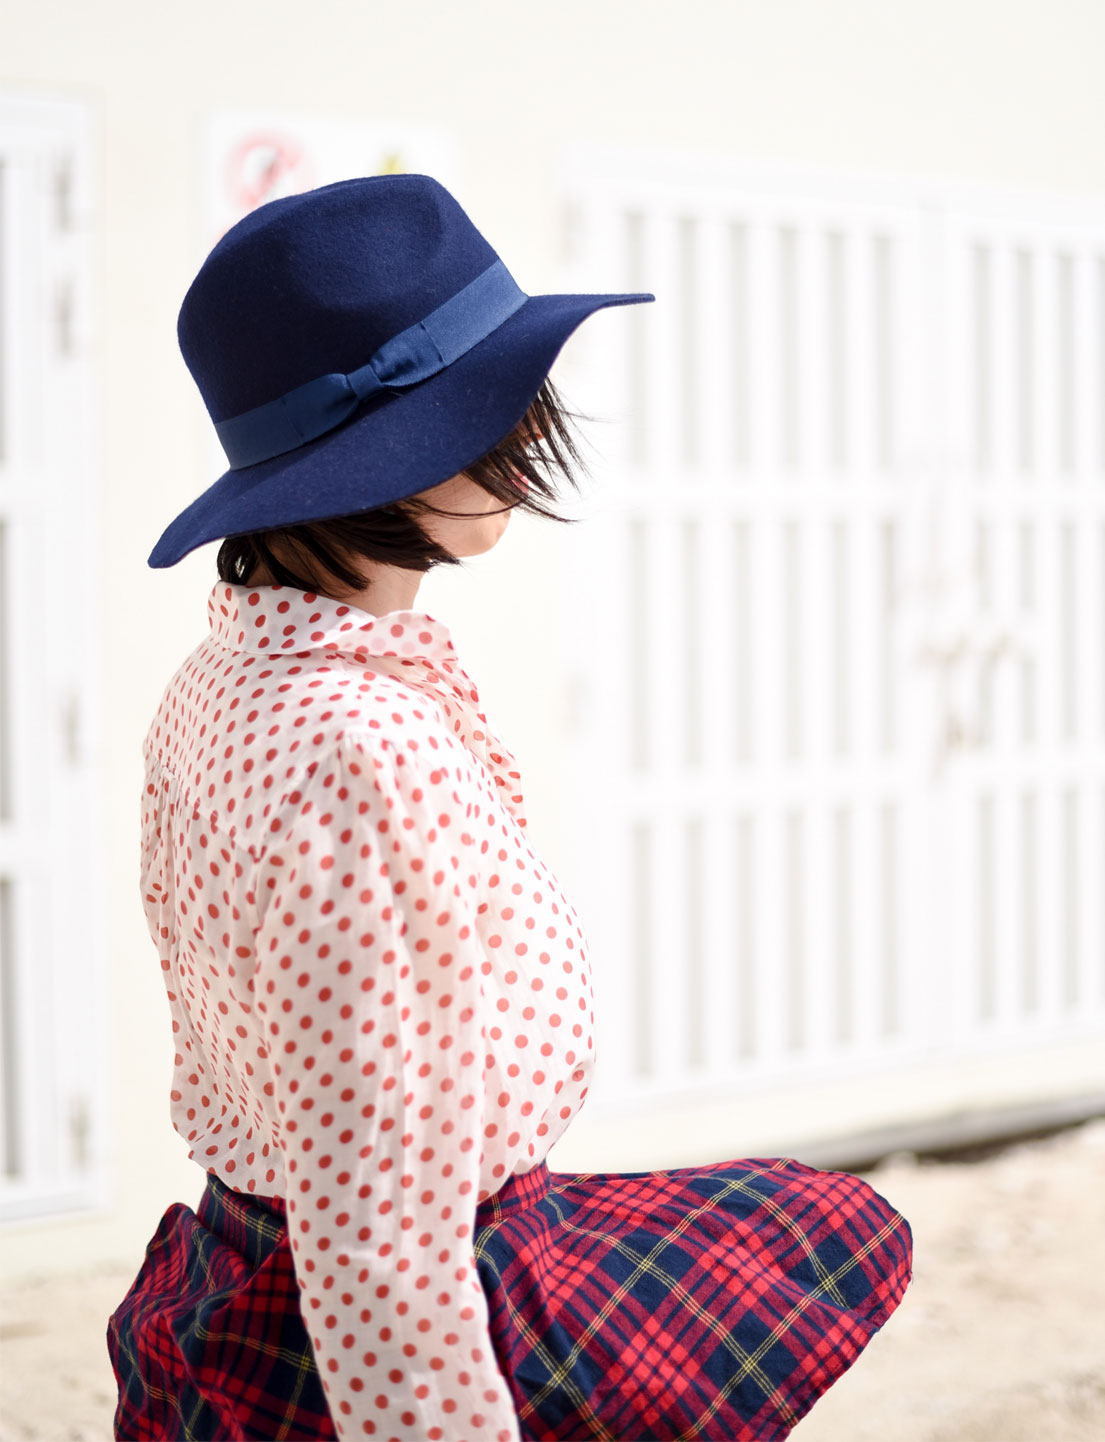 Checked Skirt + Polka Dot Shirt